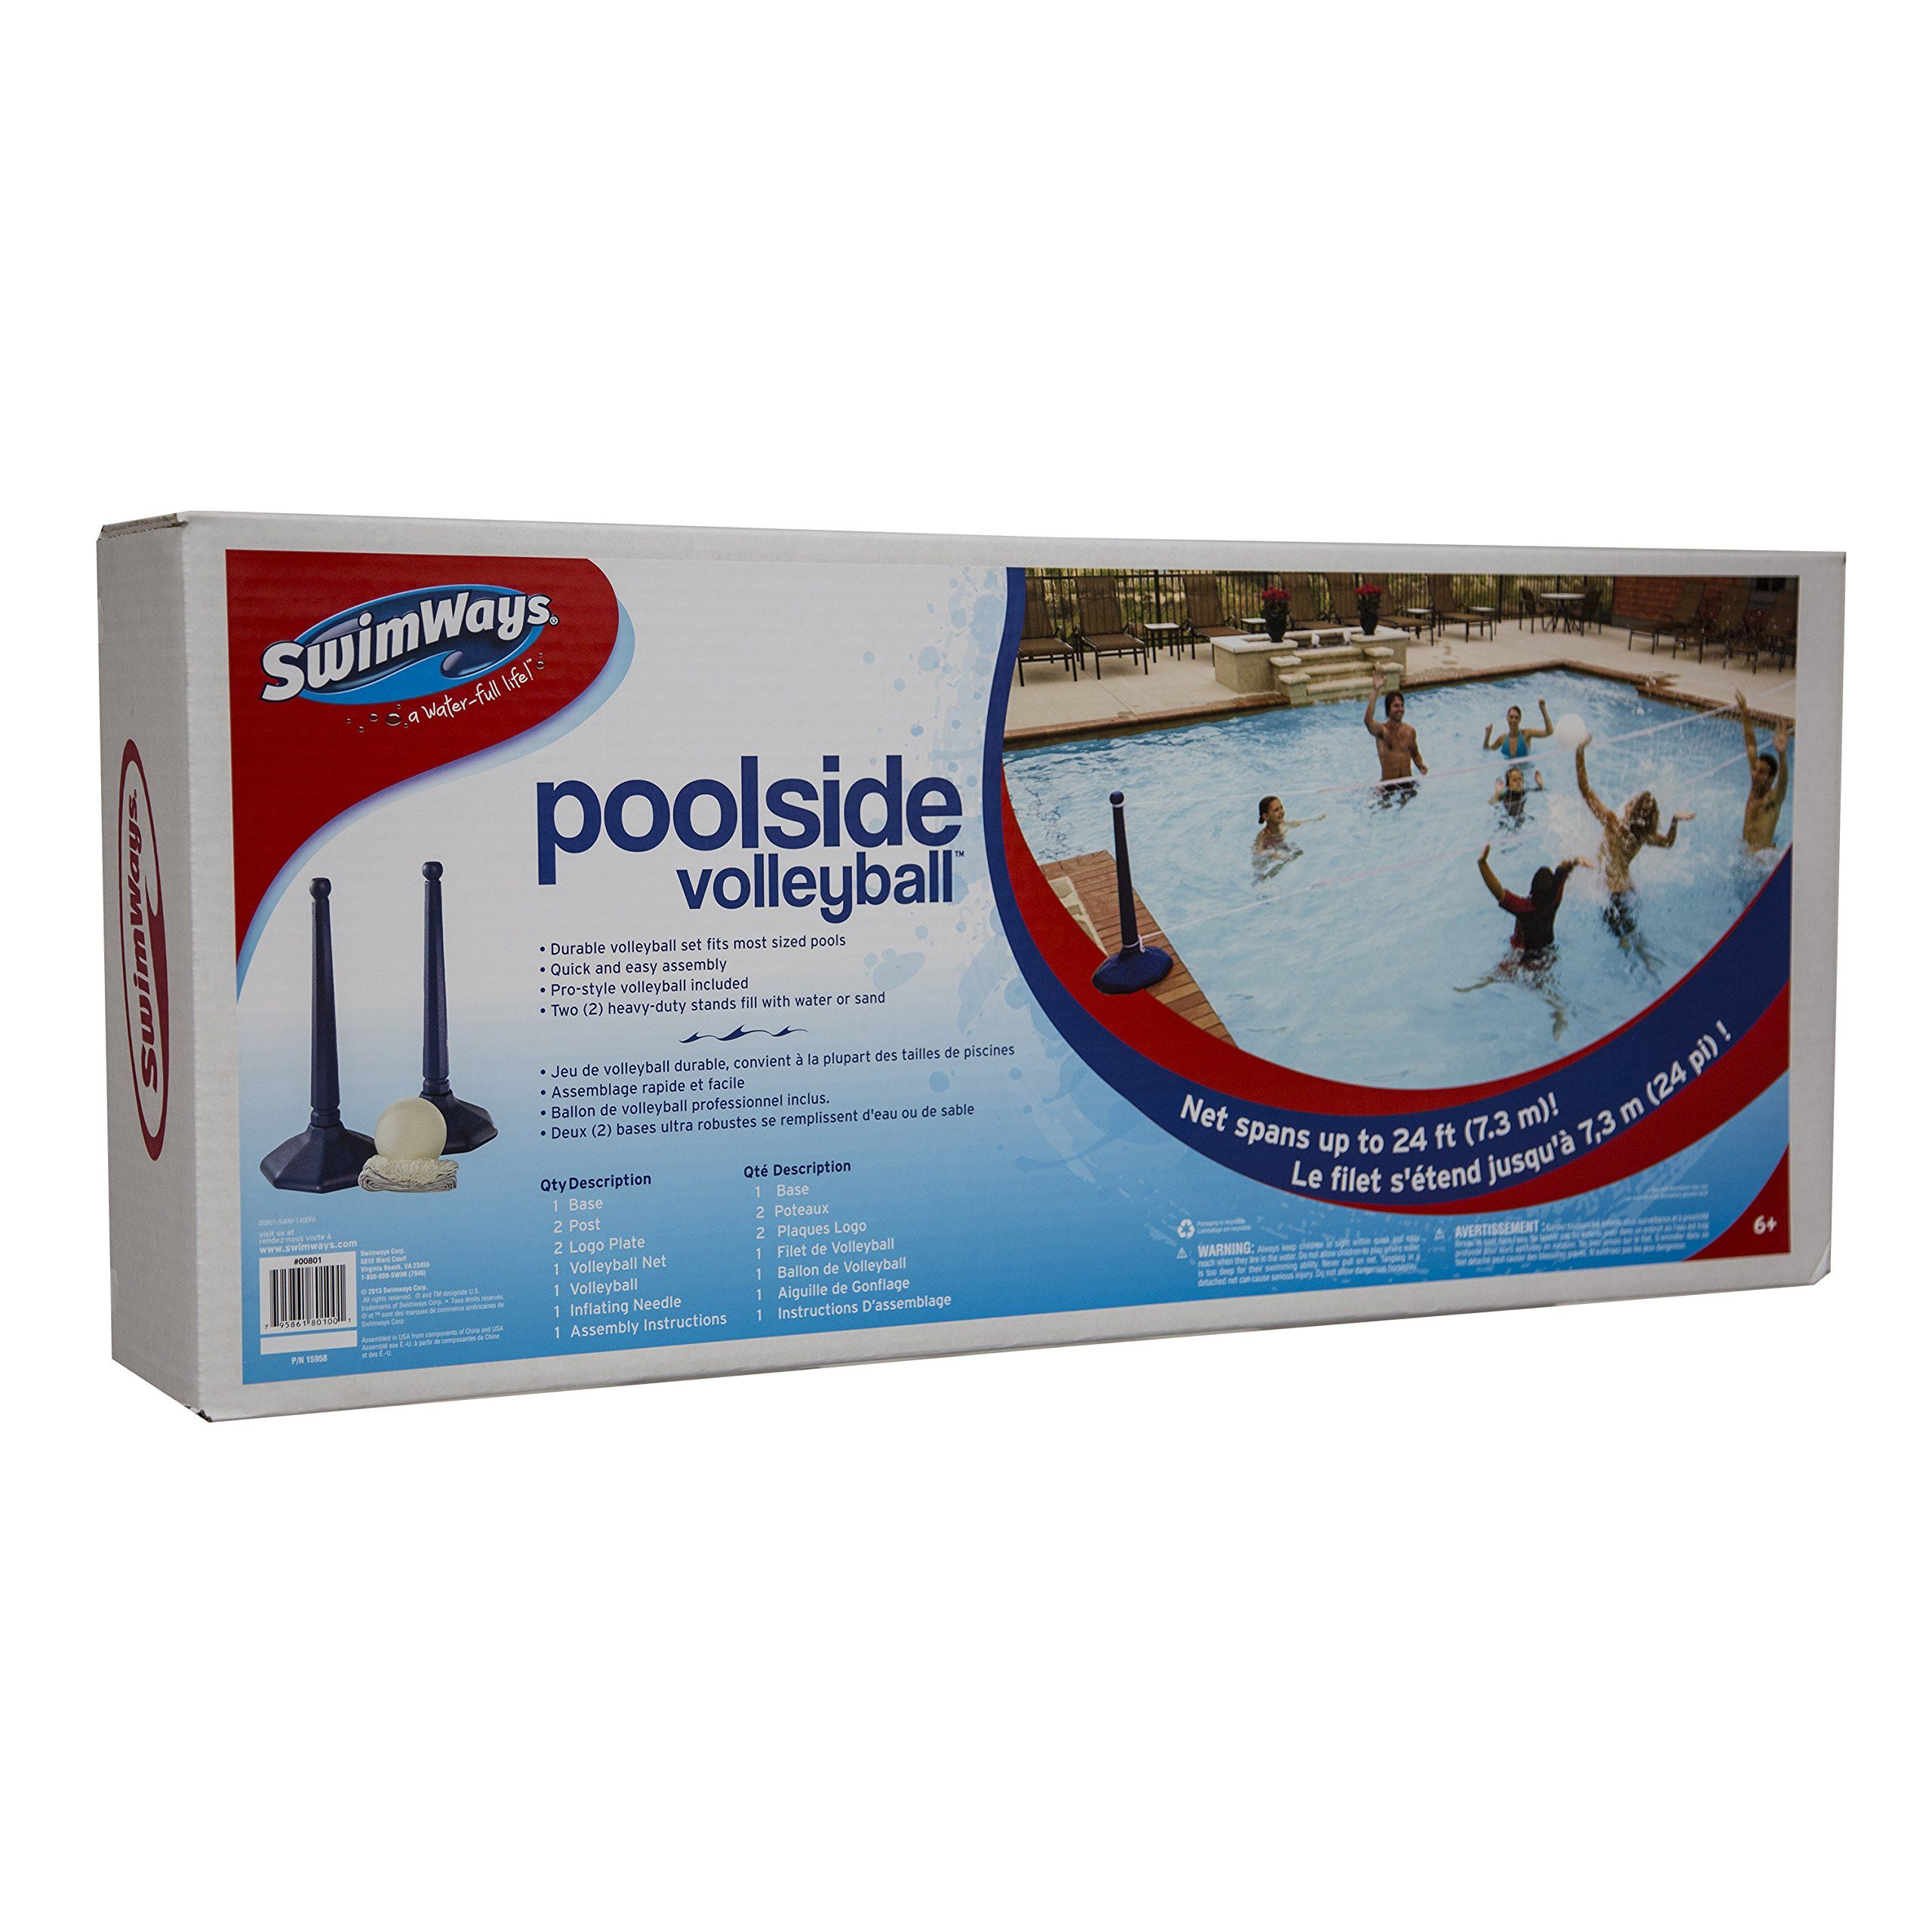 Swimways Poolside Volleyball Click Image To Review More Details It Is Amazon Affiliate Link Wate Volleyball Set Swimming Pools Inground Water Pool Games